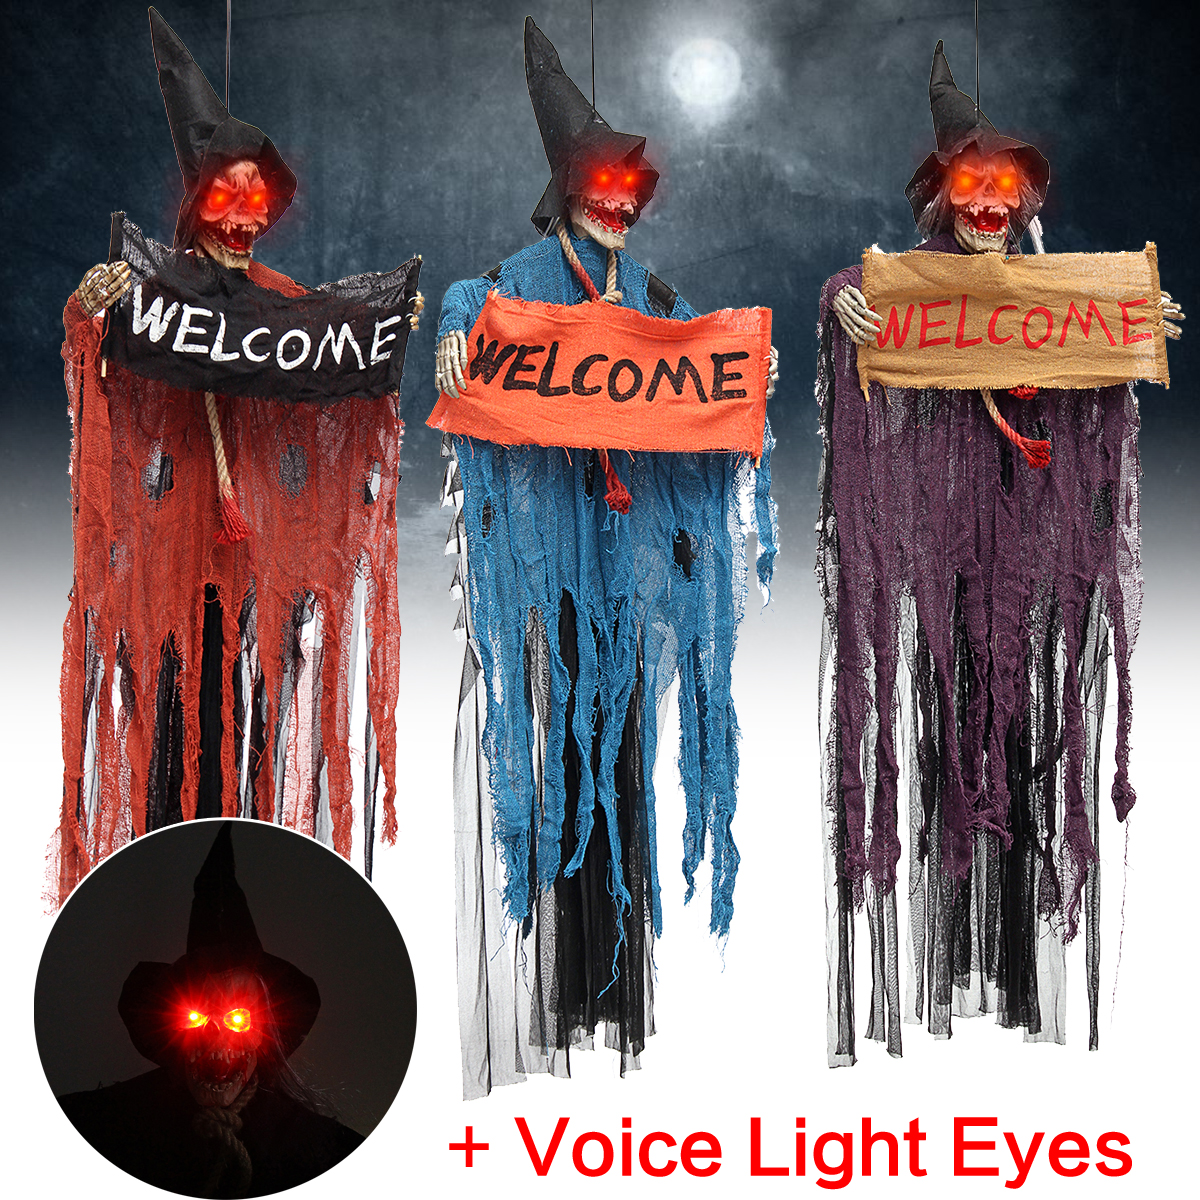 US $15 84 17% OFF|Halloween Prop Electric Voice Hanging Skull Skeleton  Ghost Welcome Sign Halloween Escape Horror Props Haunted House  Decoration-in